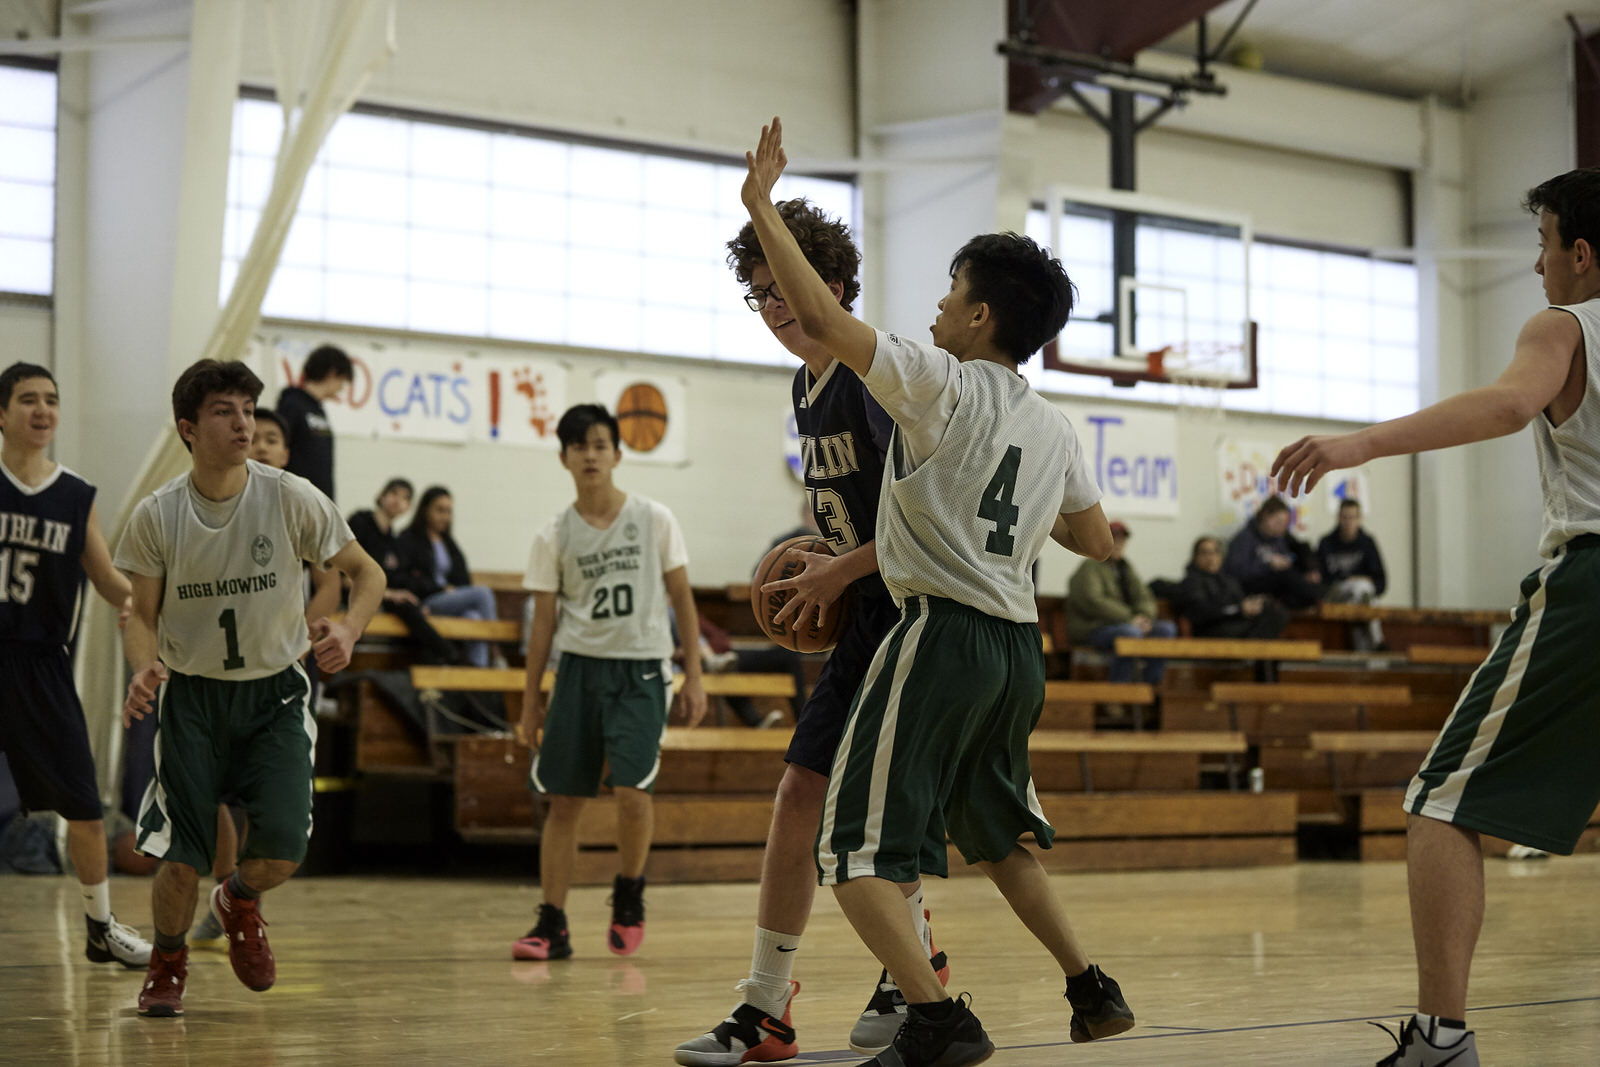 Dublin JV Boys Basketball vs High Mowing School - Jan 26 2019 - 0193.jpg